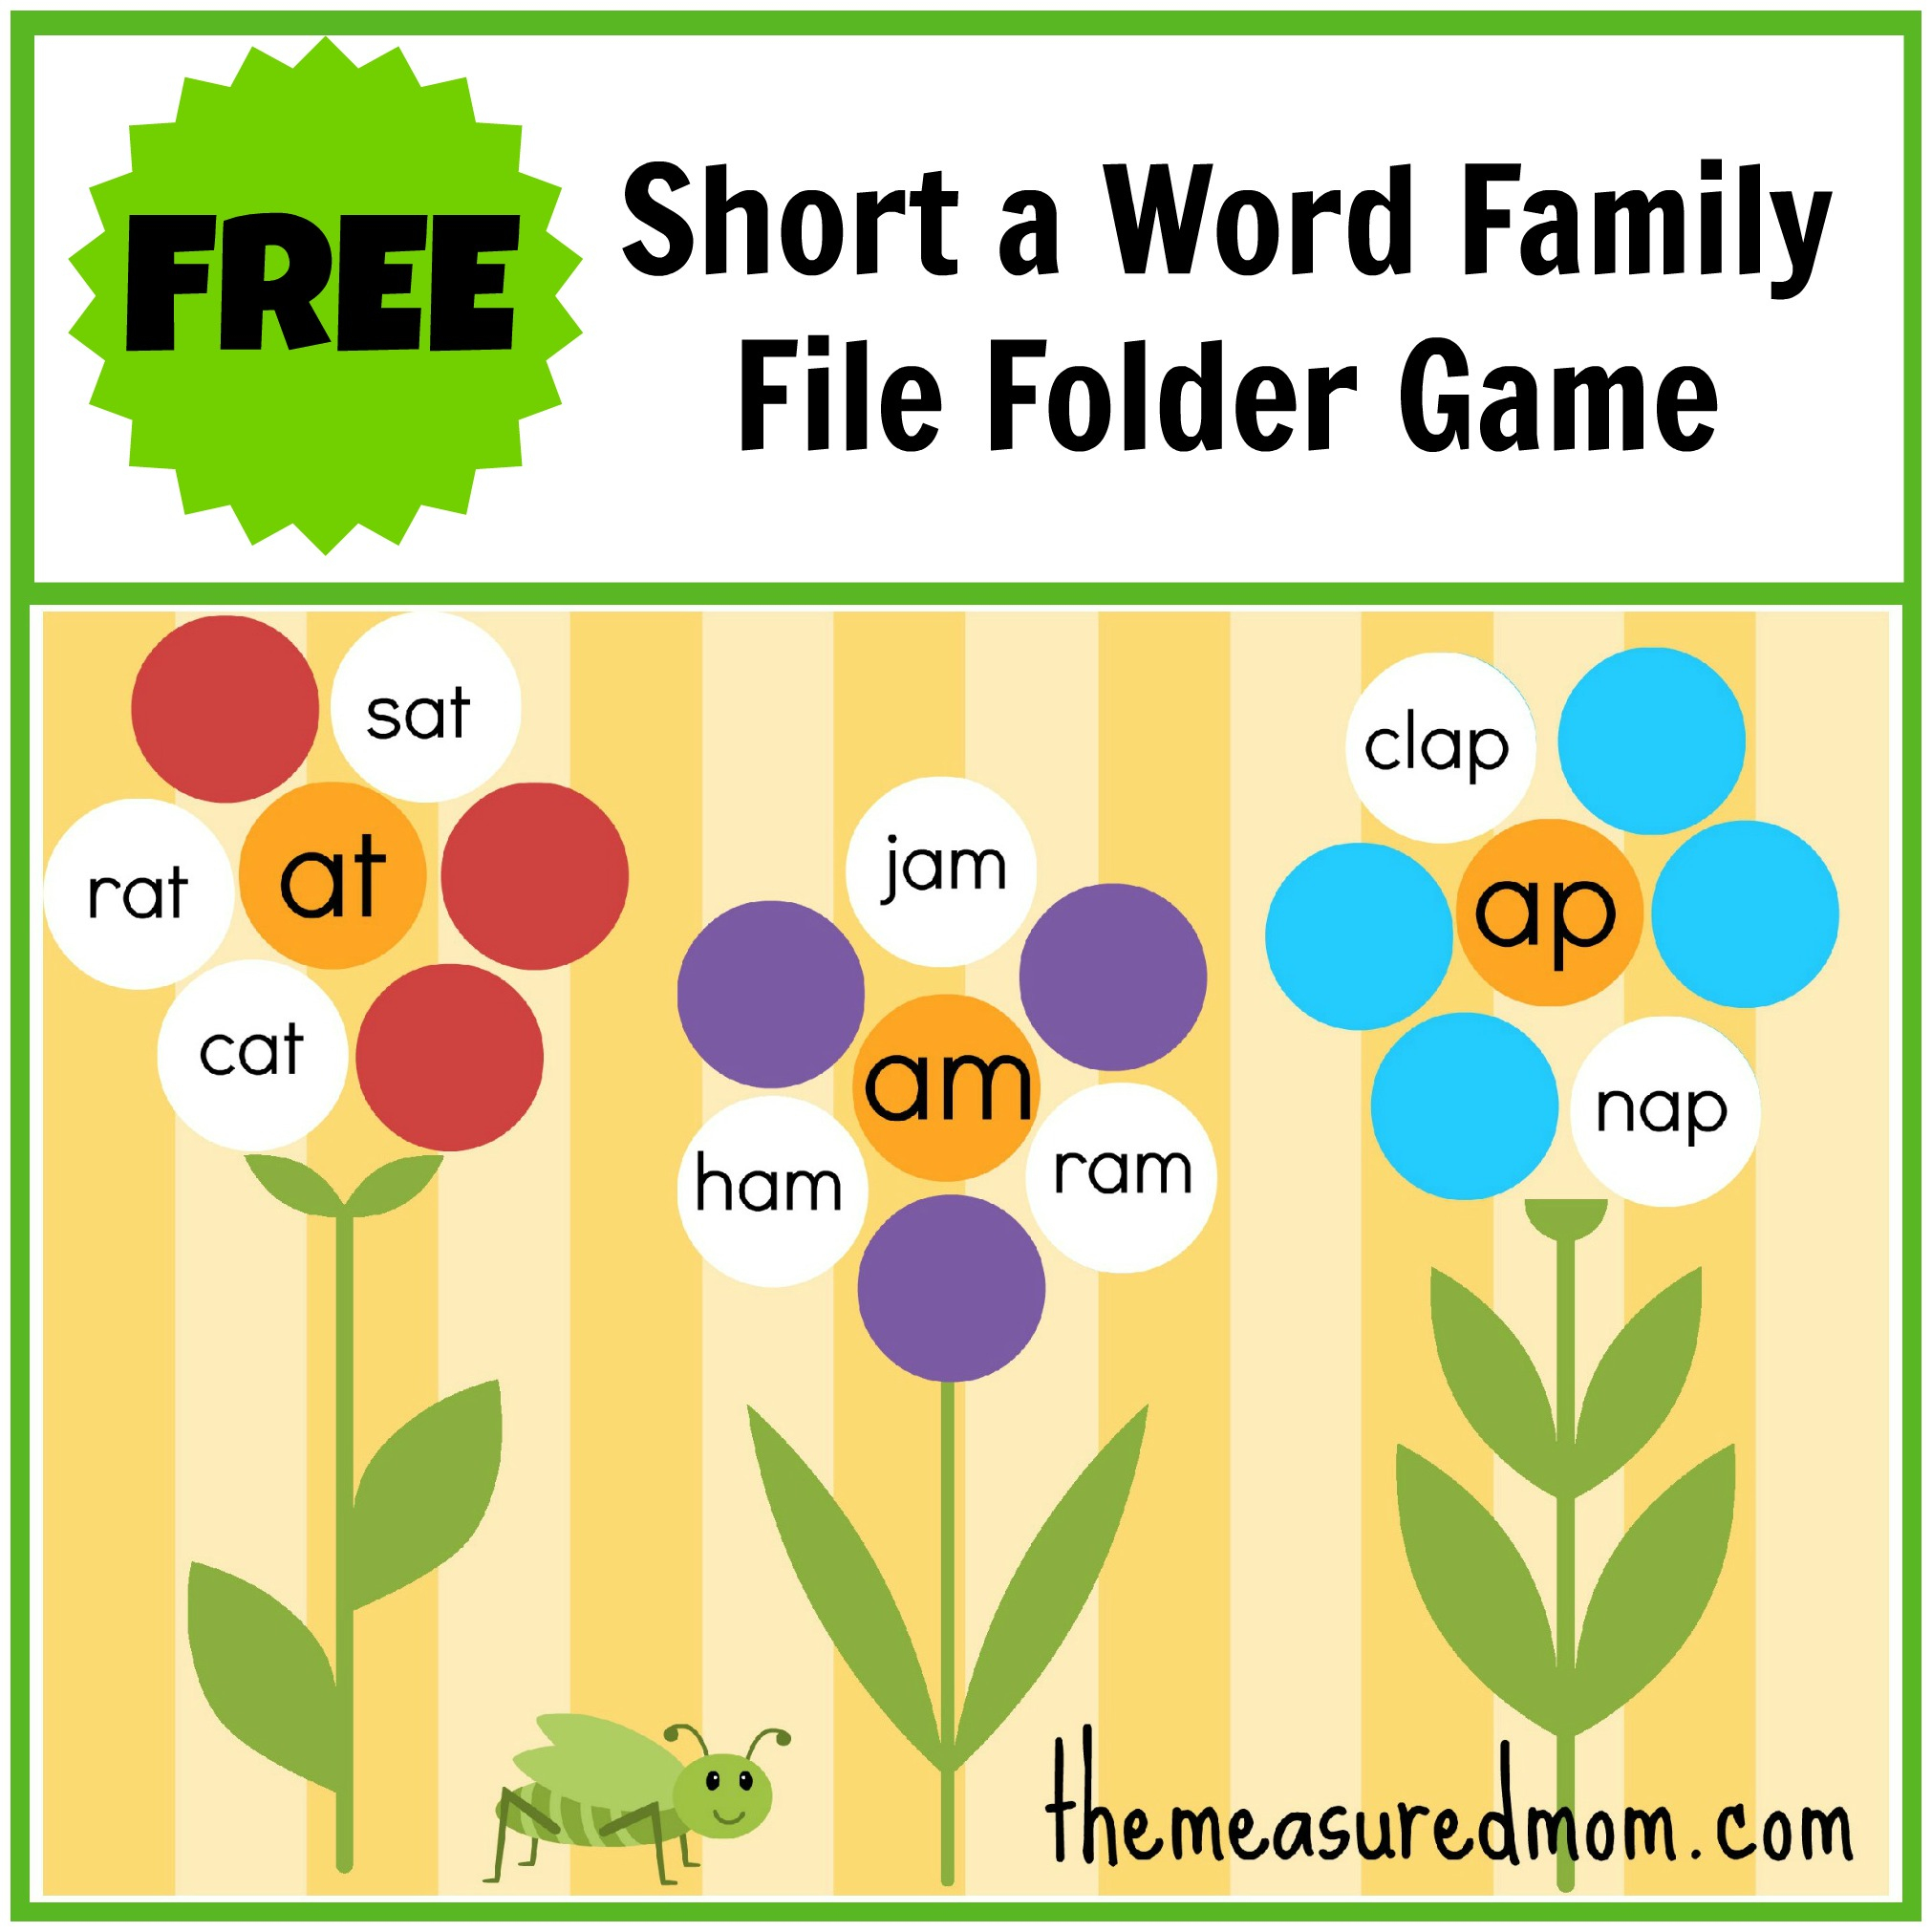 Free Word Family File Folder Game: Short A - The Measured Mom - Free Printable Preschool Folder Games